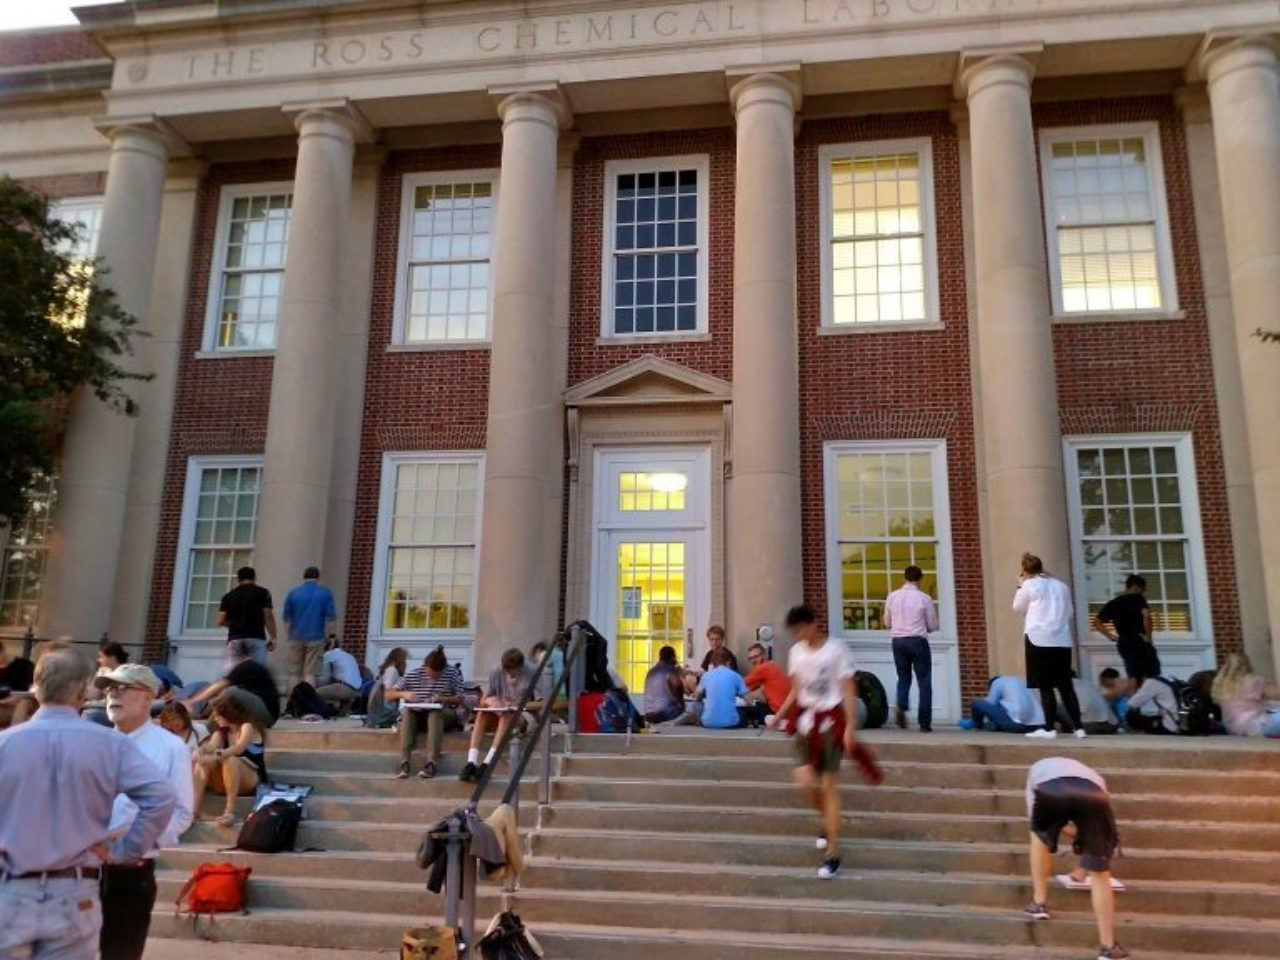 Students drawing architectural details of Ross Hall